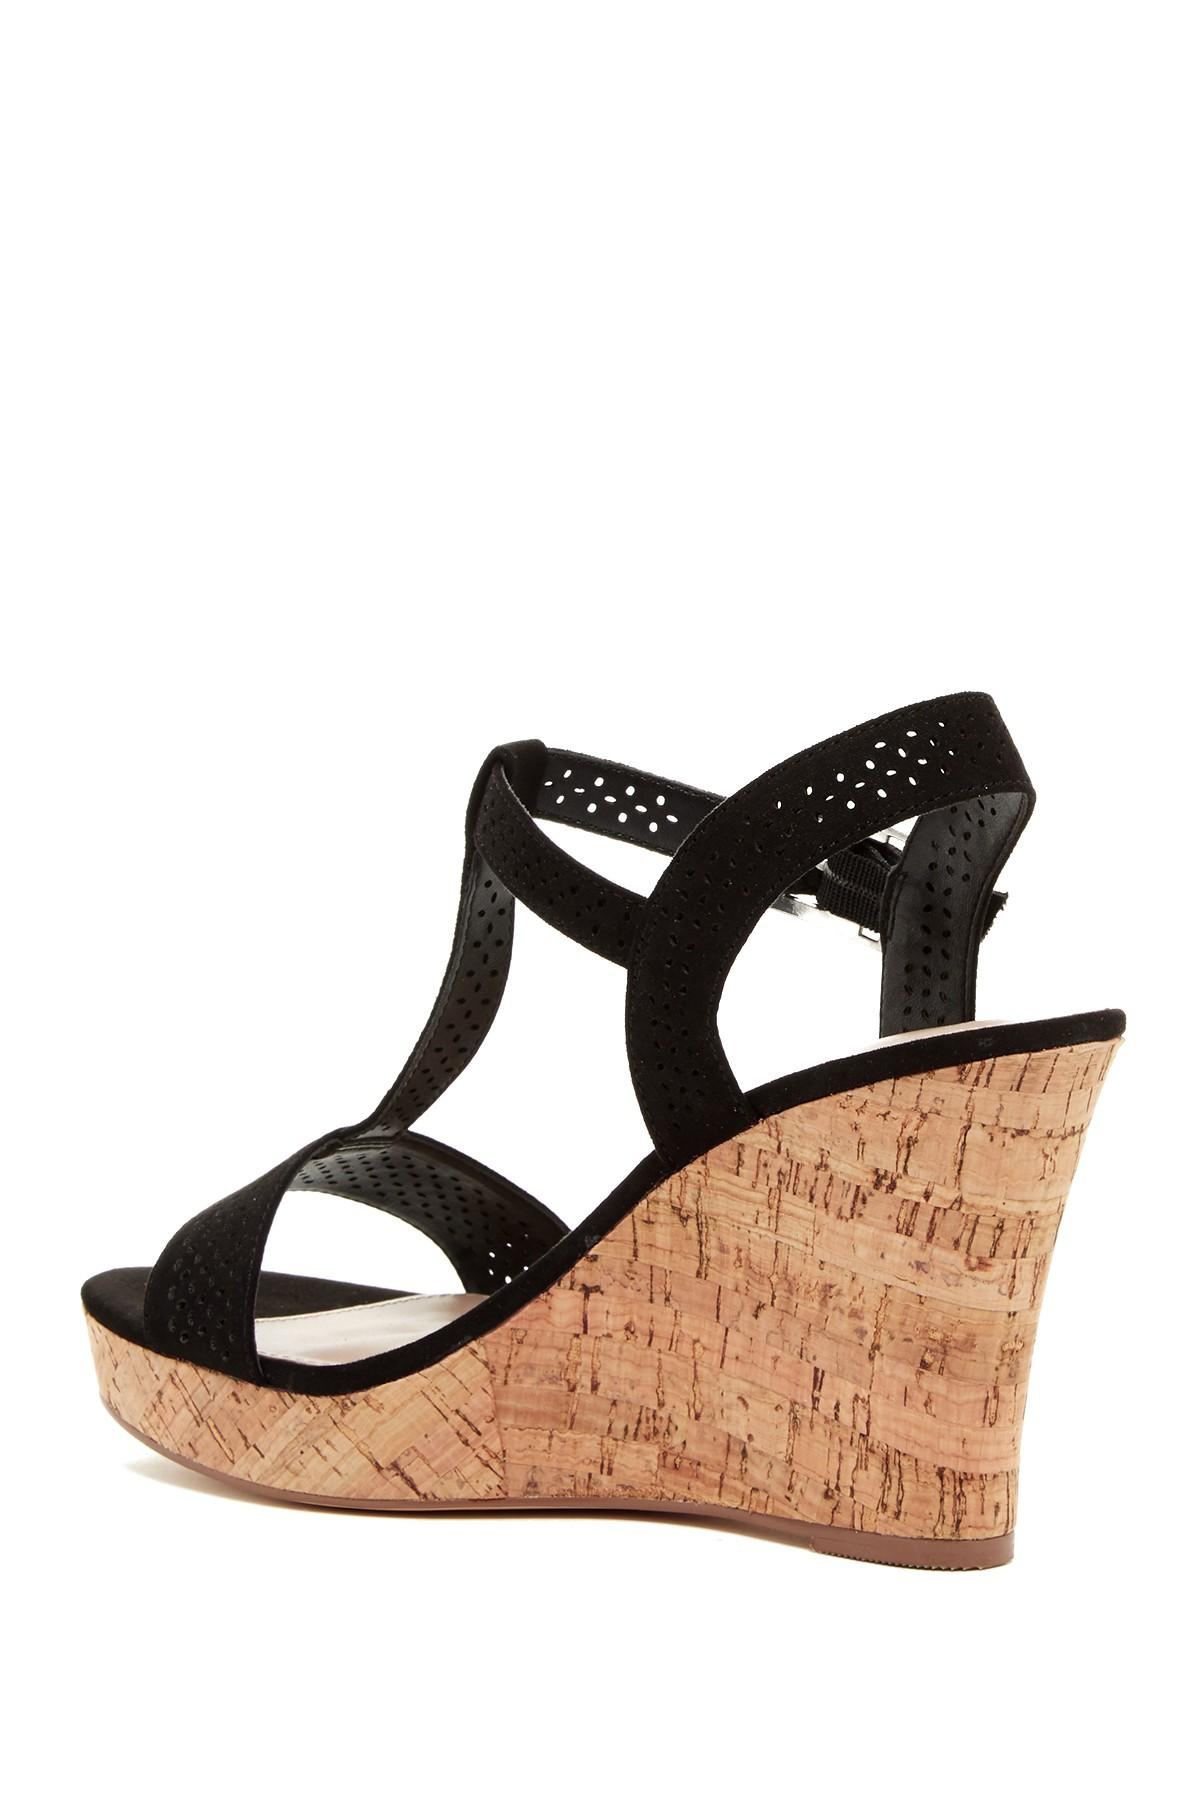 Naturalizer Strappy Wedge Black